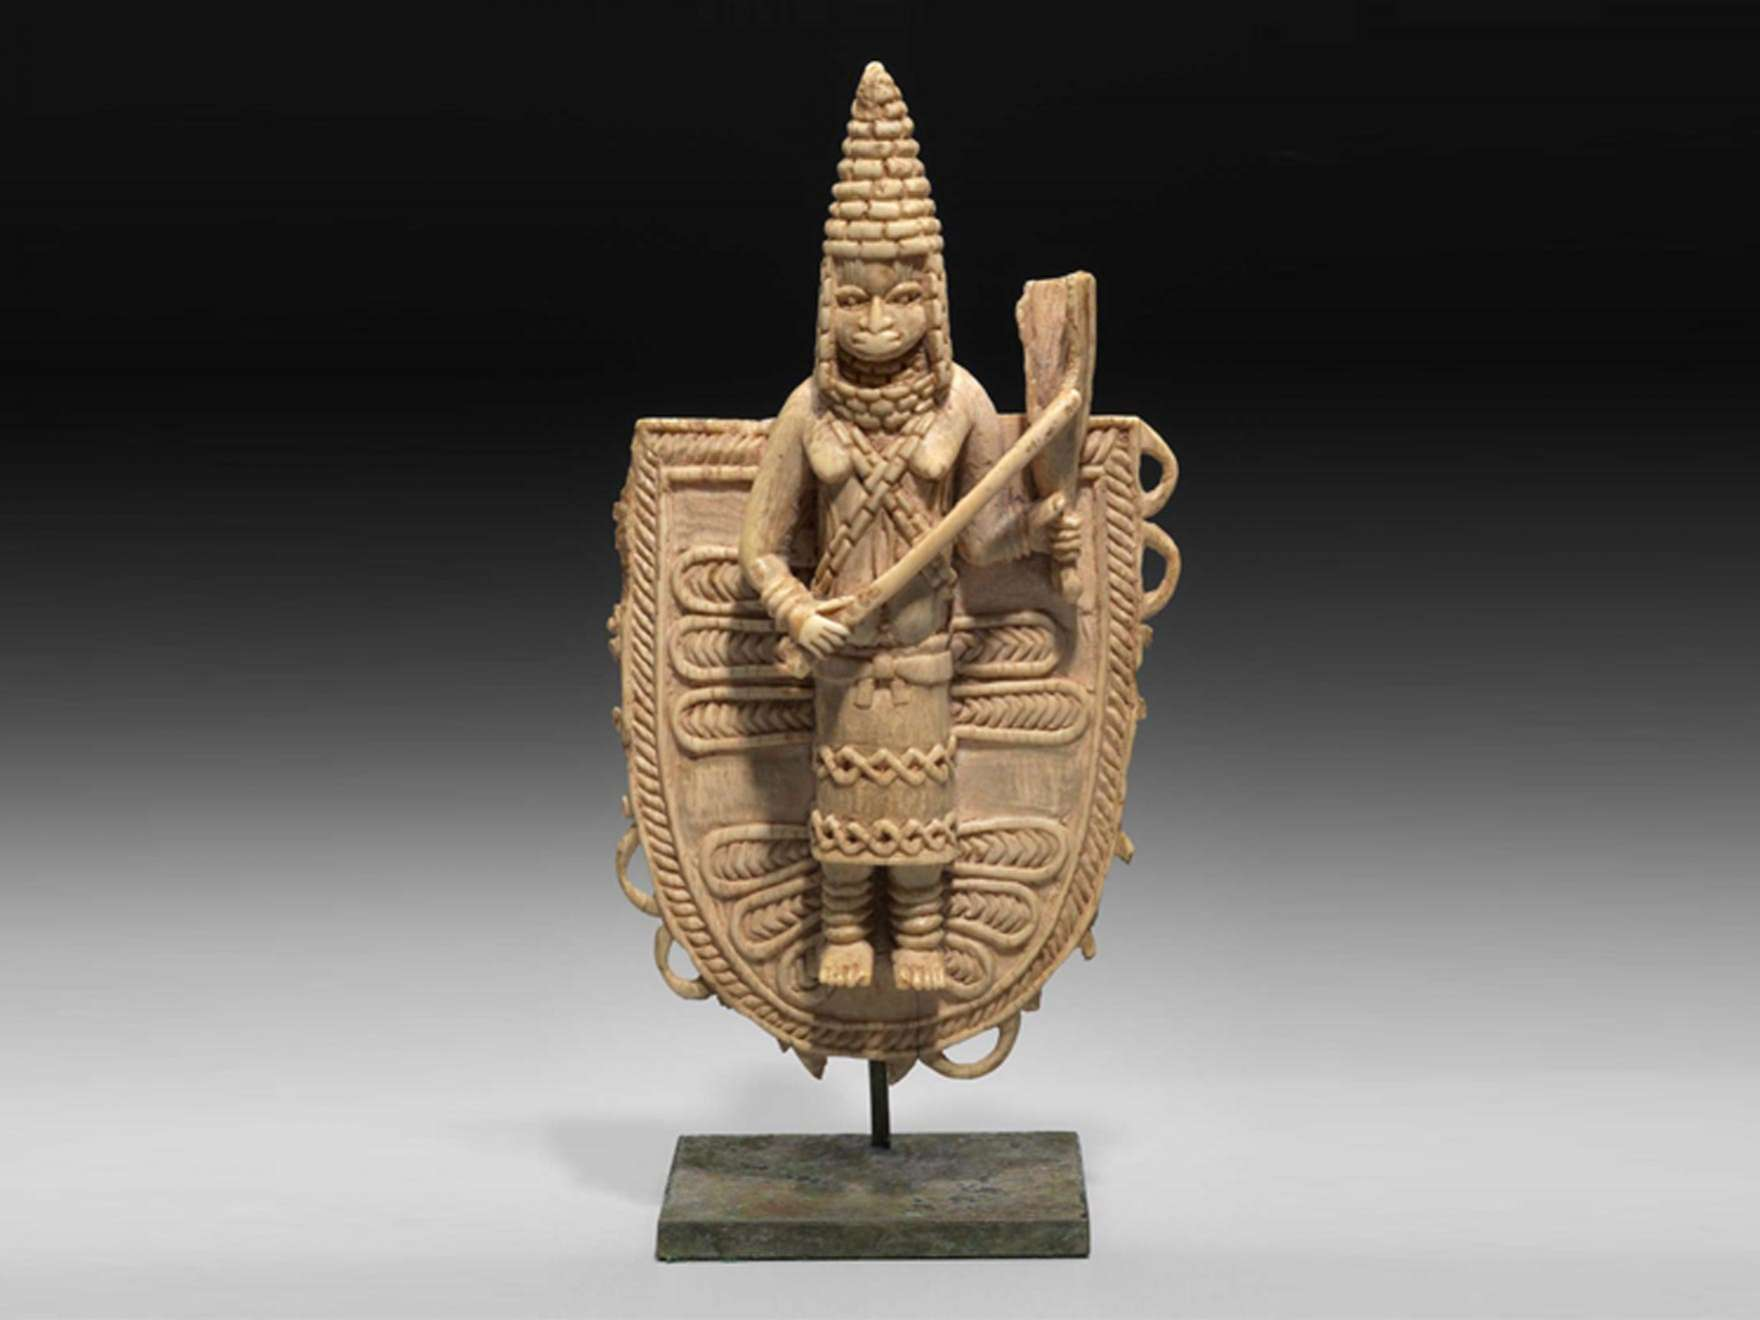 Ivory pendant of a queen in a headdress holding a baton